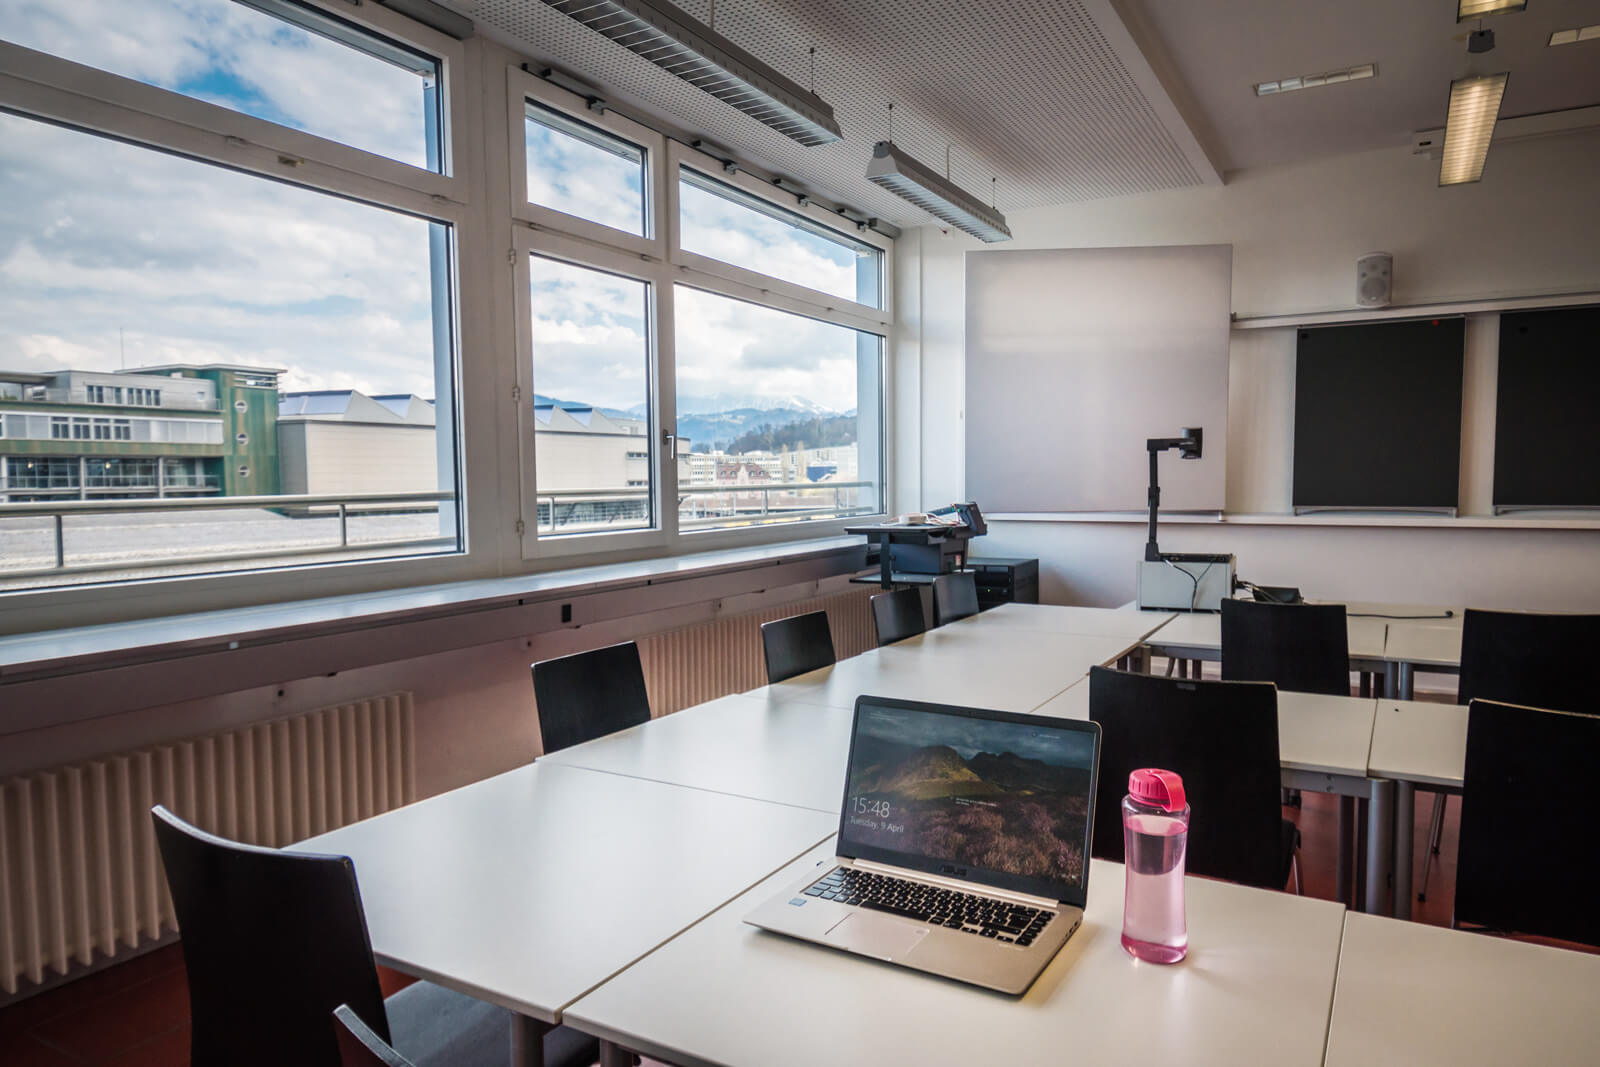 Study in Switzerland like a boss - Hochschule Luzern